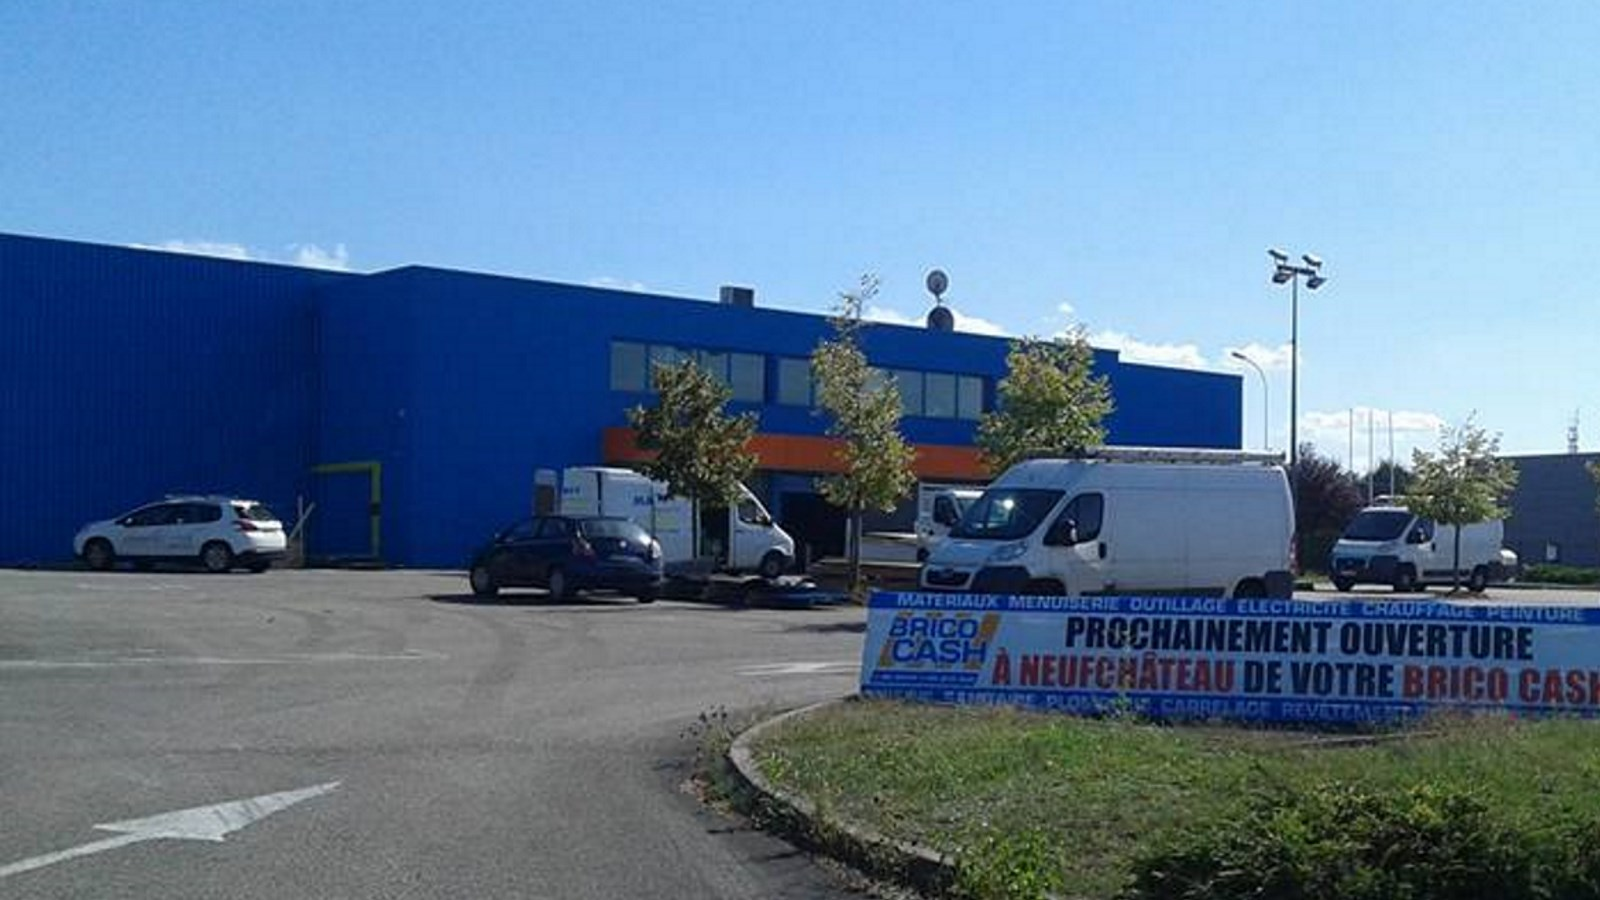 Magasin bricolage alencon sunstyl with magasin bricolage alencon perfect n octobre magasin de - Magasin bricolage le havre ...